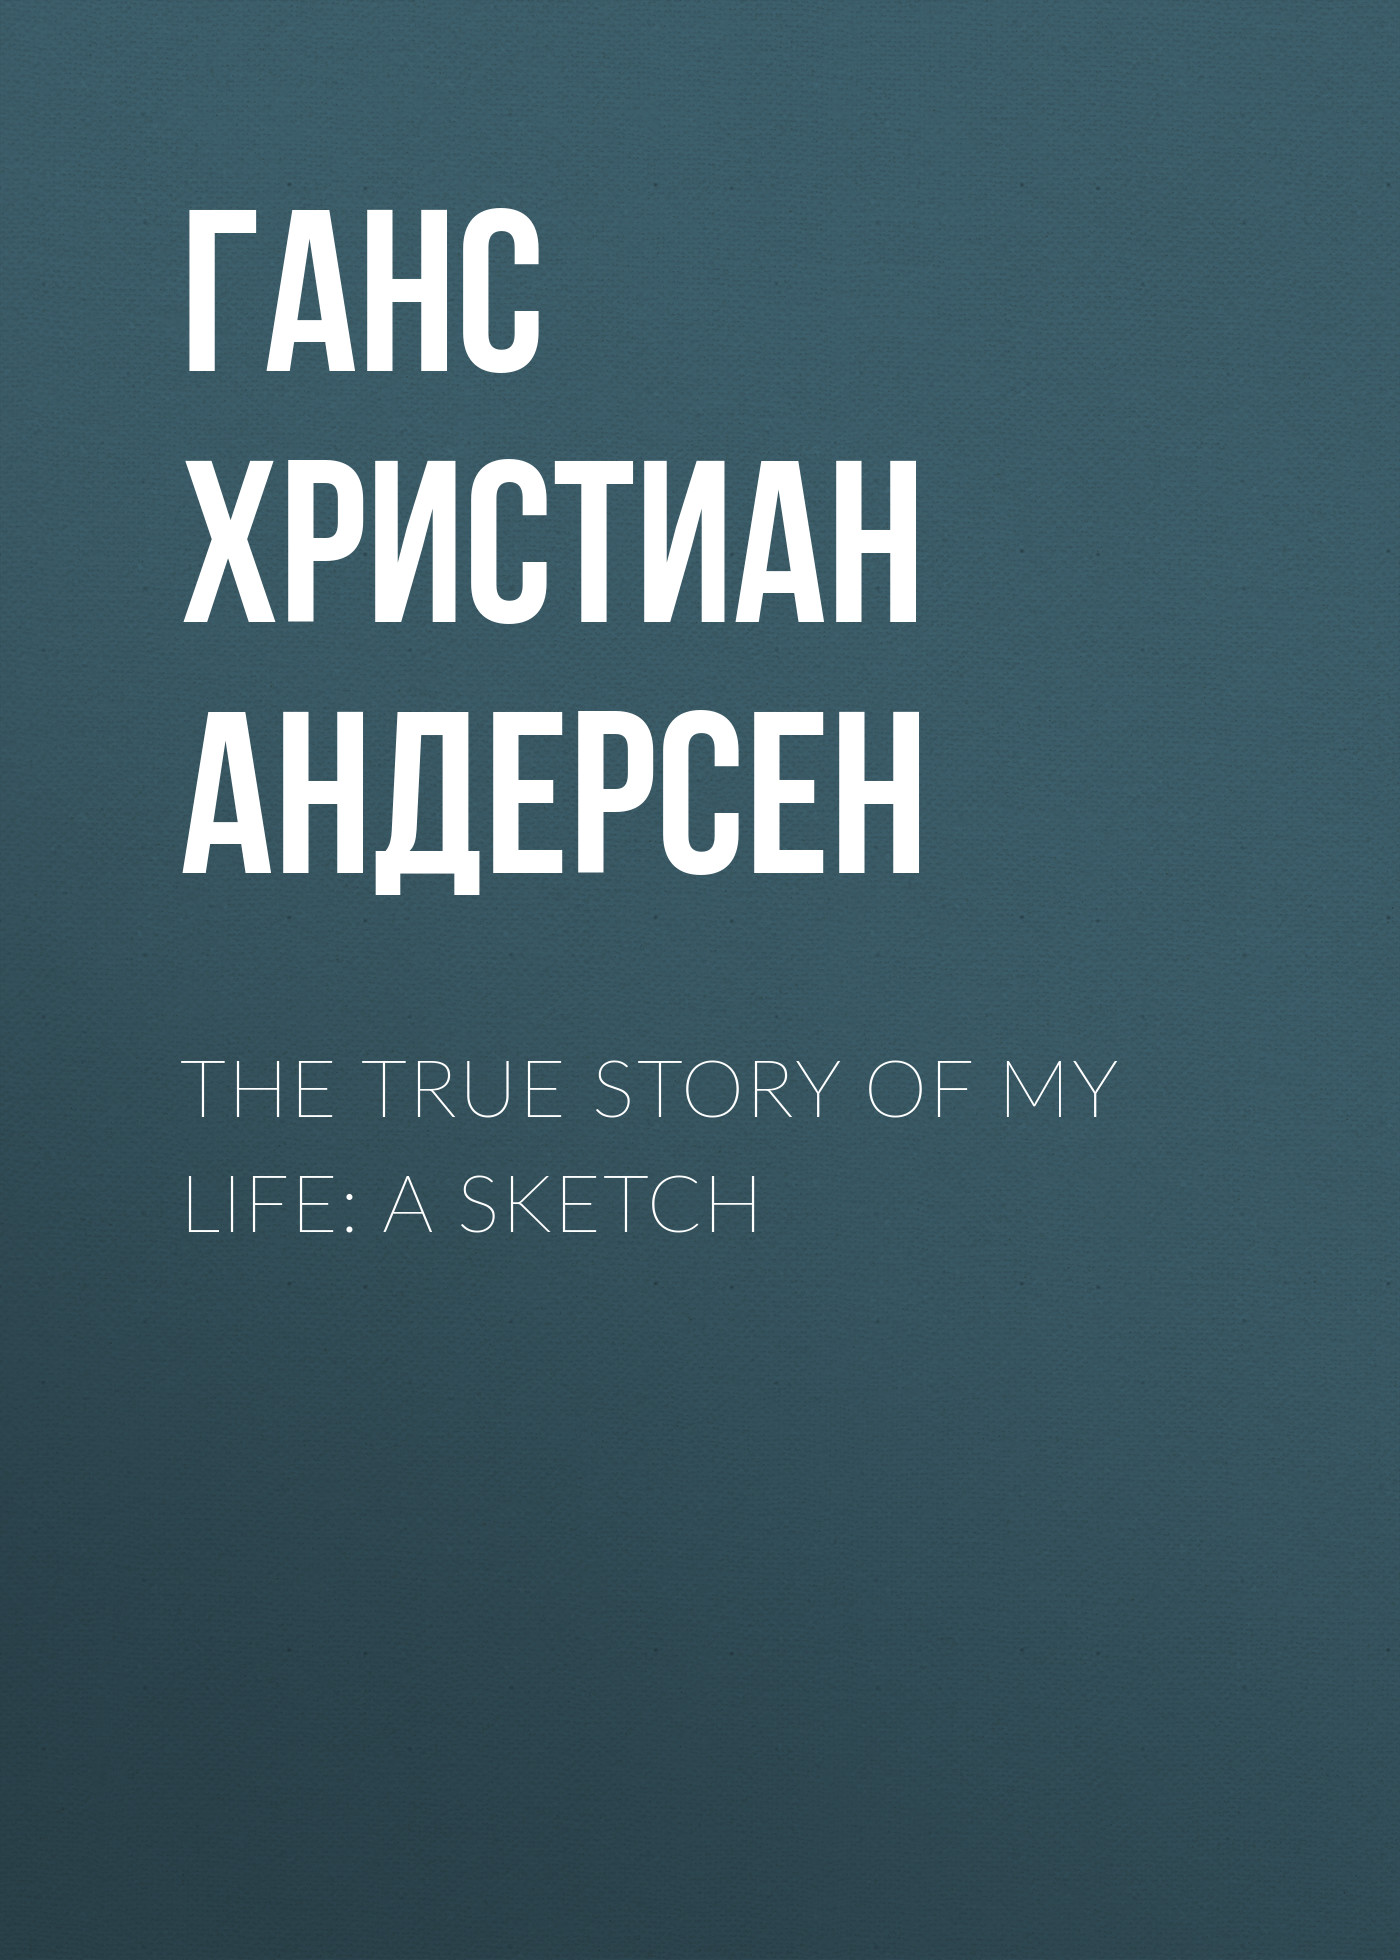 Ганс Христиан Андерсен The True Story of My Life: A Sketch trevor a harris my true life story of non hodgkin lymphoma plus amputation